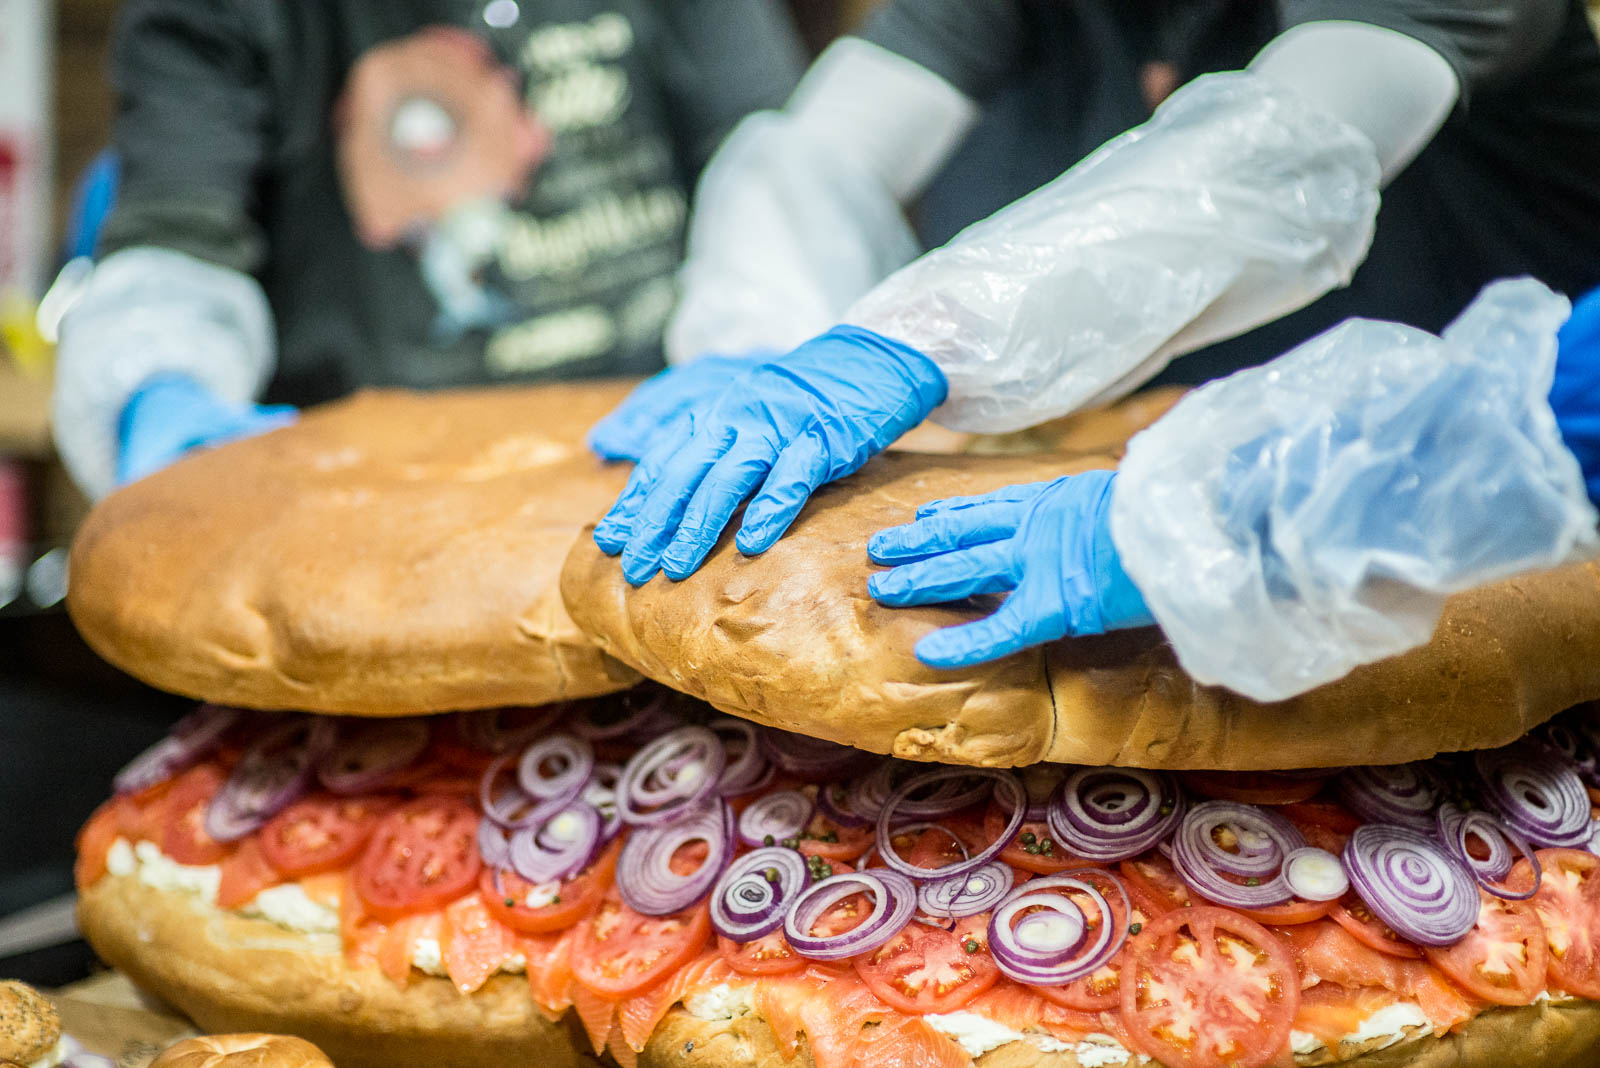 Creating The World's Largest Bagel & Lox